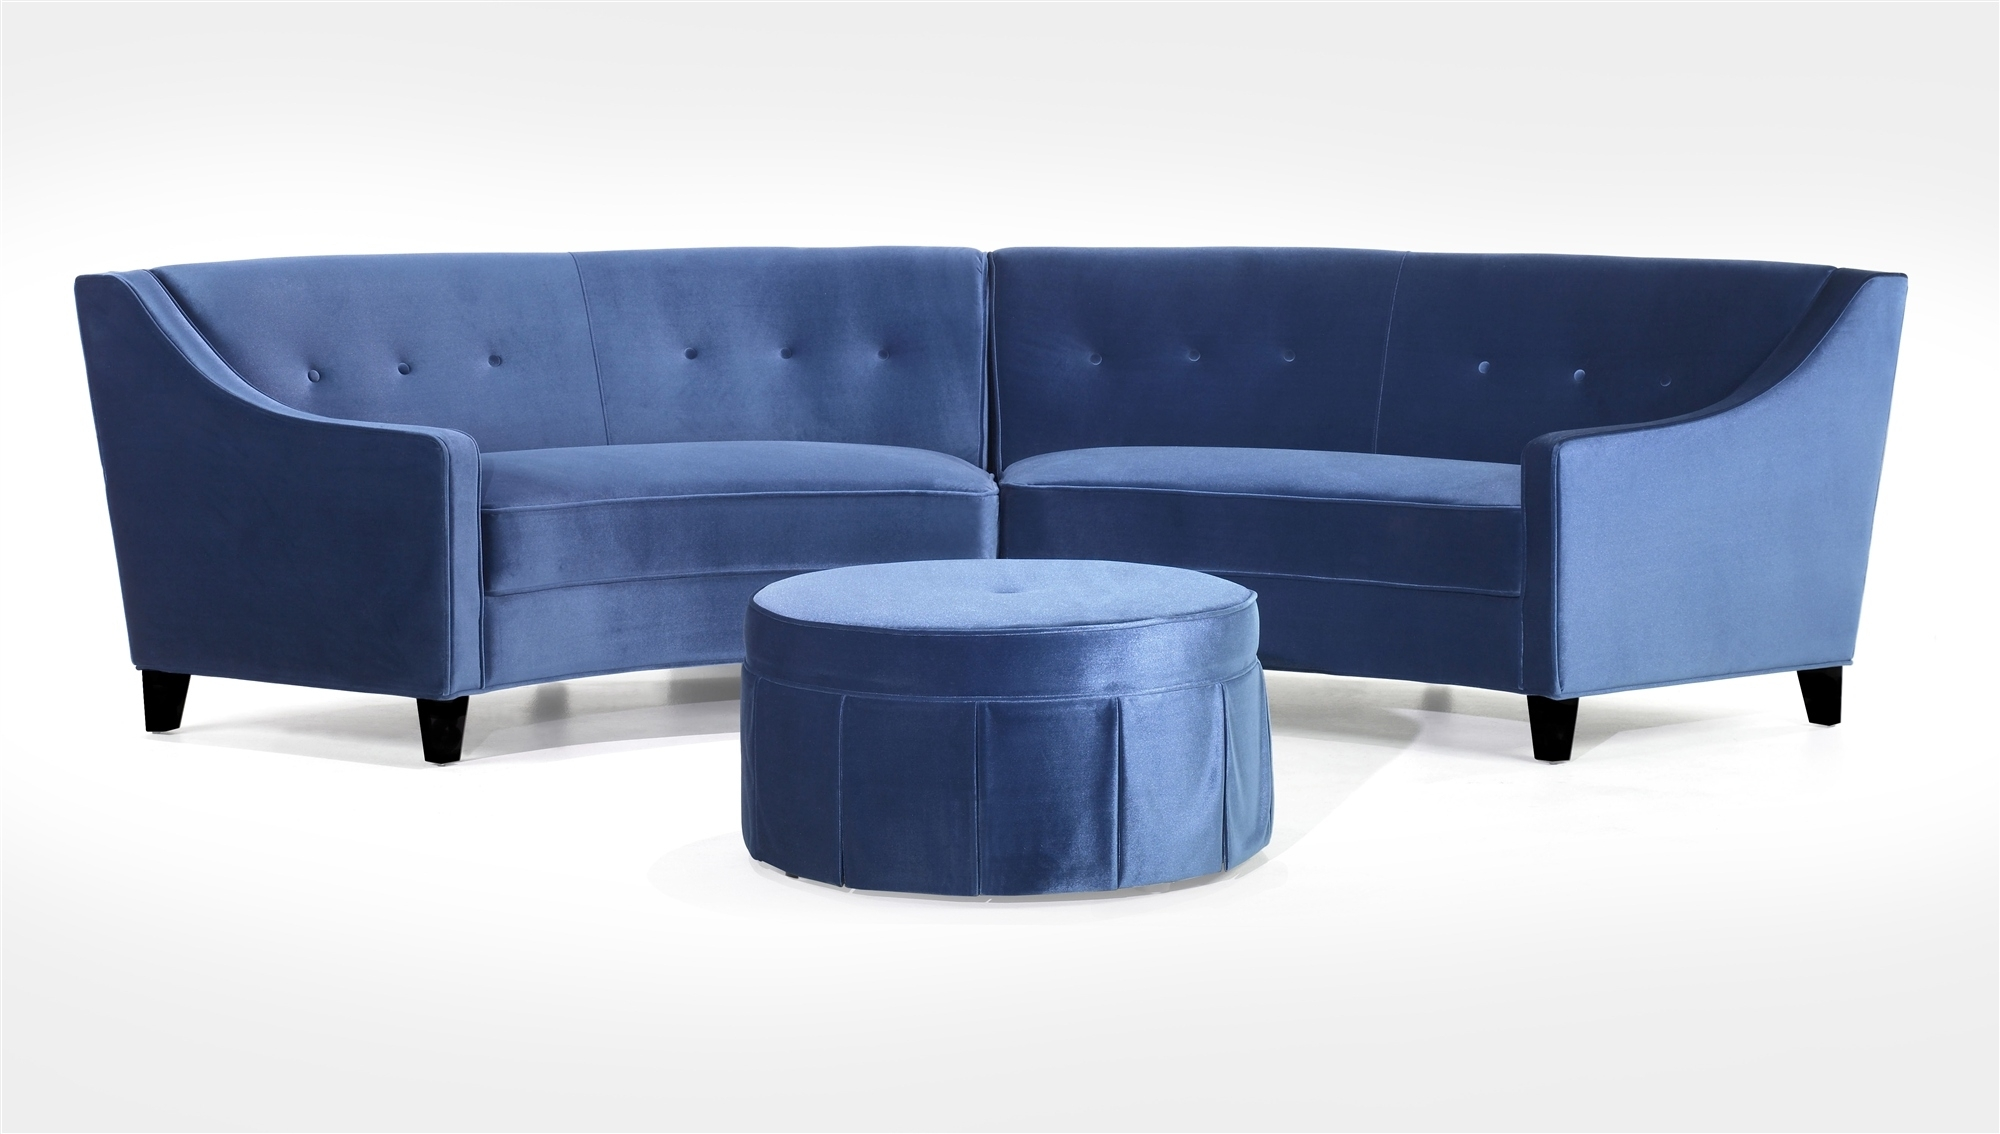 Popular Small Round Sectional Sofa 49 In Sleek Sectional Sofas With For Sleek Sectional Sofas (View 8 of 10)